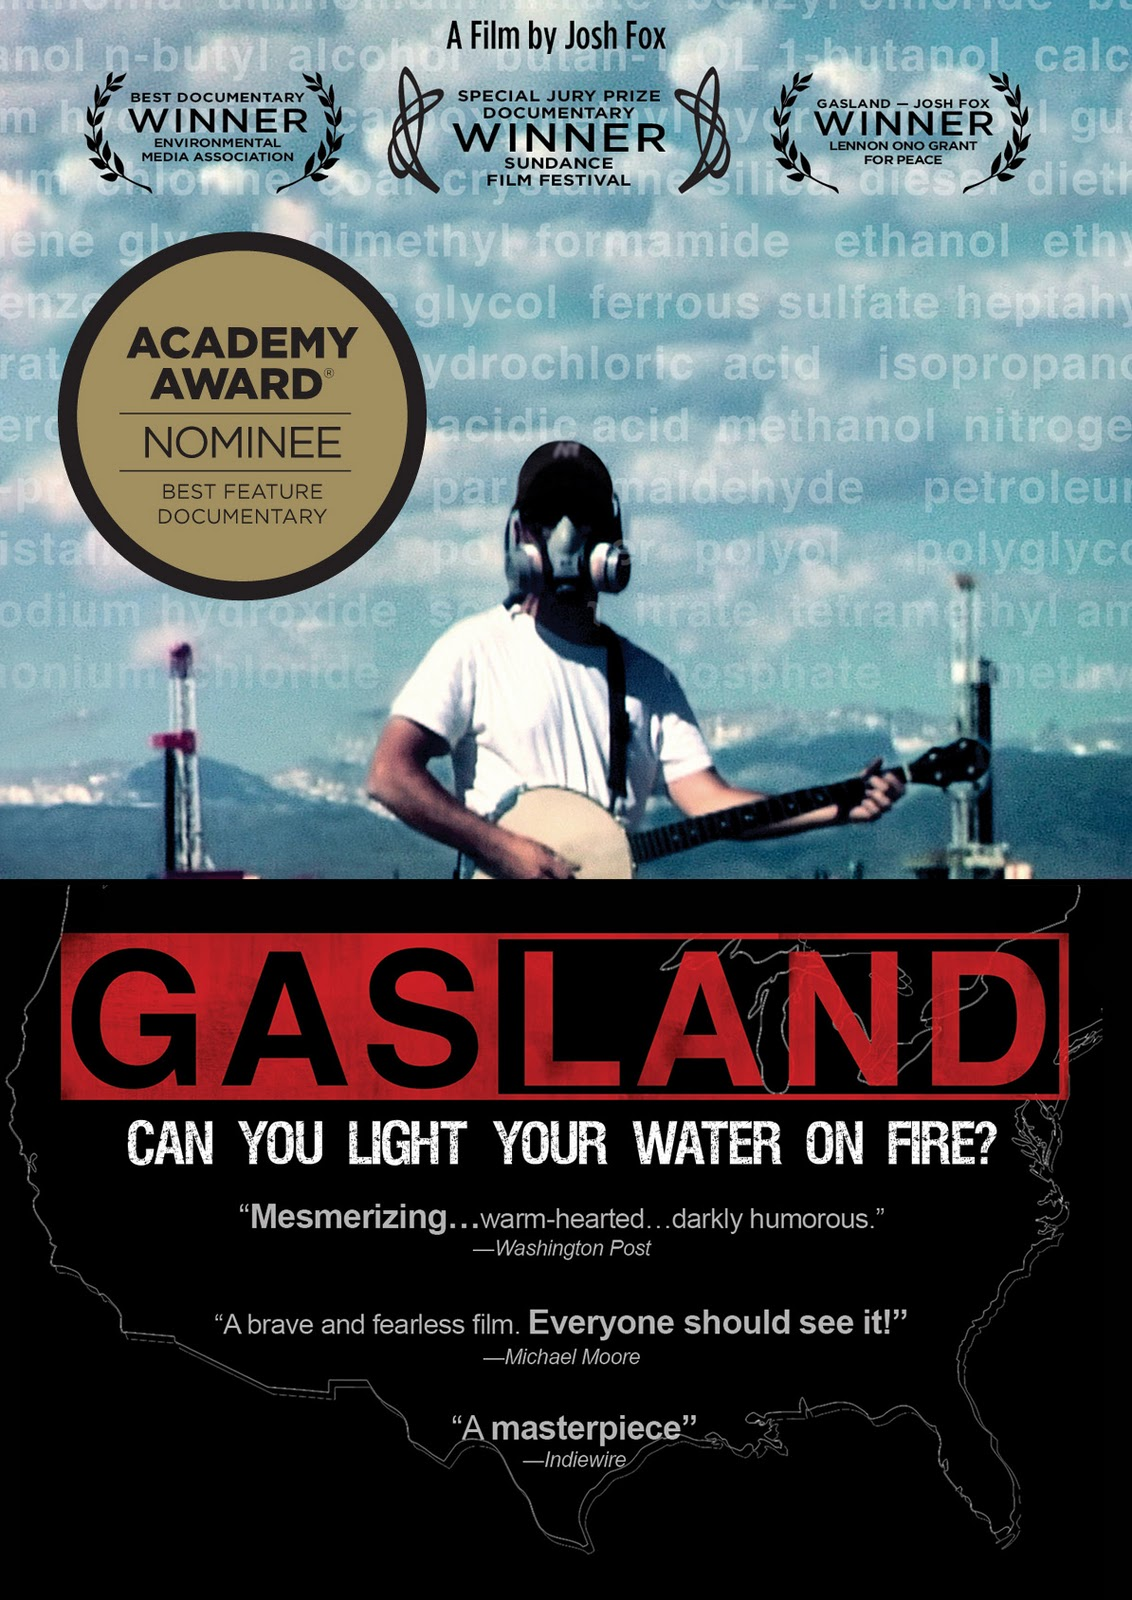 a critique of gasland can you light your water on fire Today in the news media  town reports that residents are able to light their drinking water on fire  revelations of a new country called gasland.